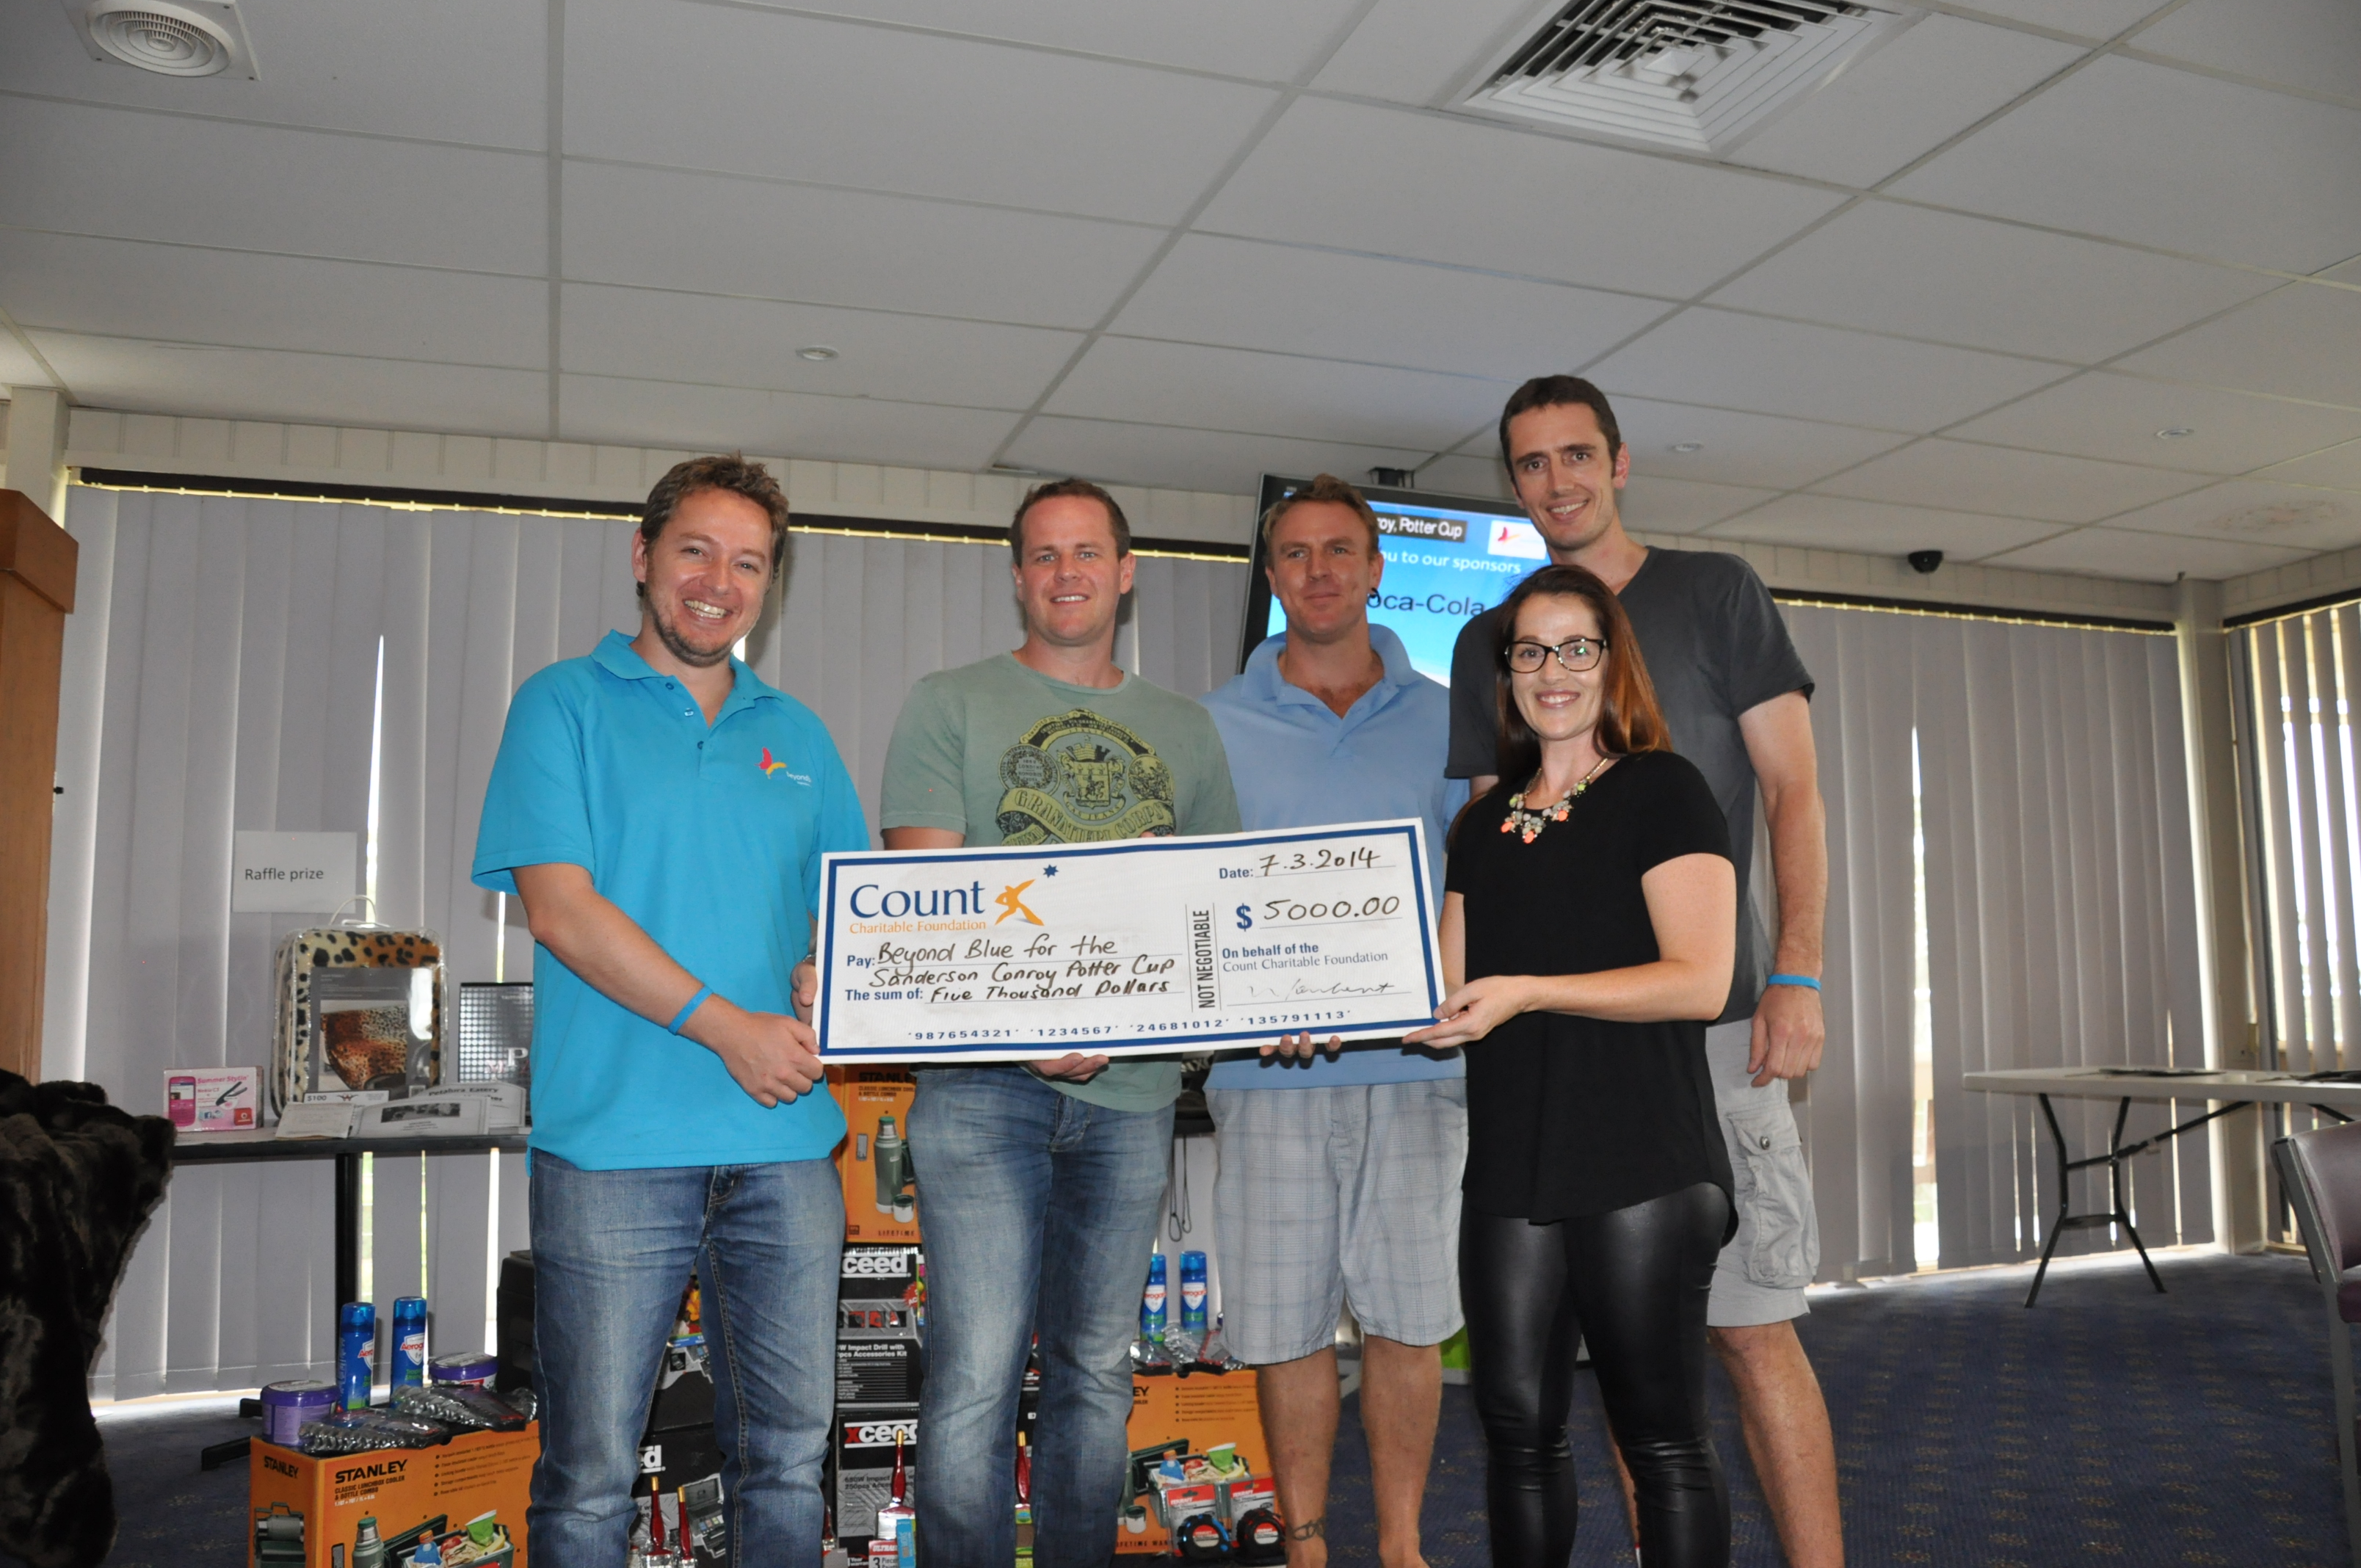 Beyond Blue's Luke, with organisers of the Sanderson Conroy Potter Cup, accepts a cheque from Count Financial.